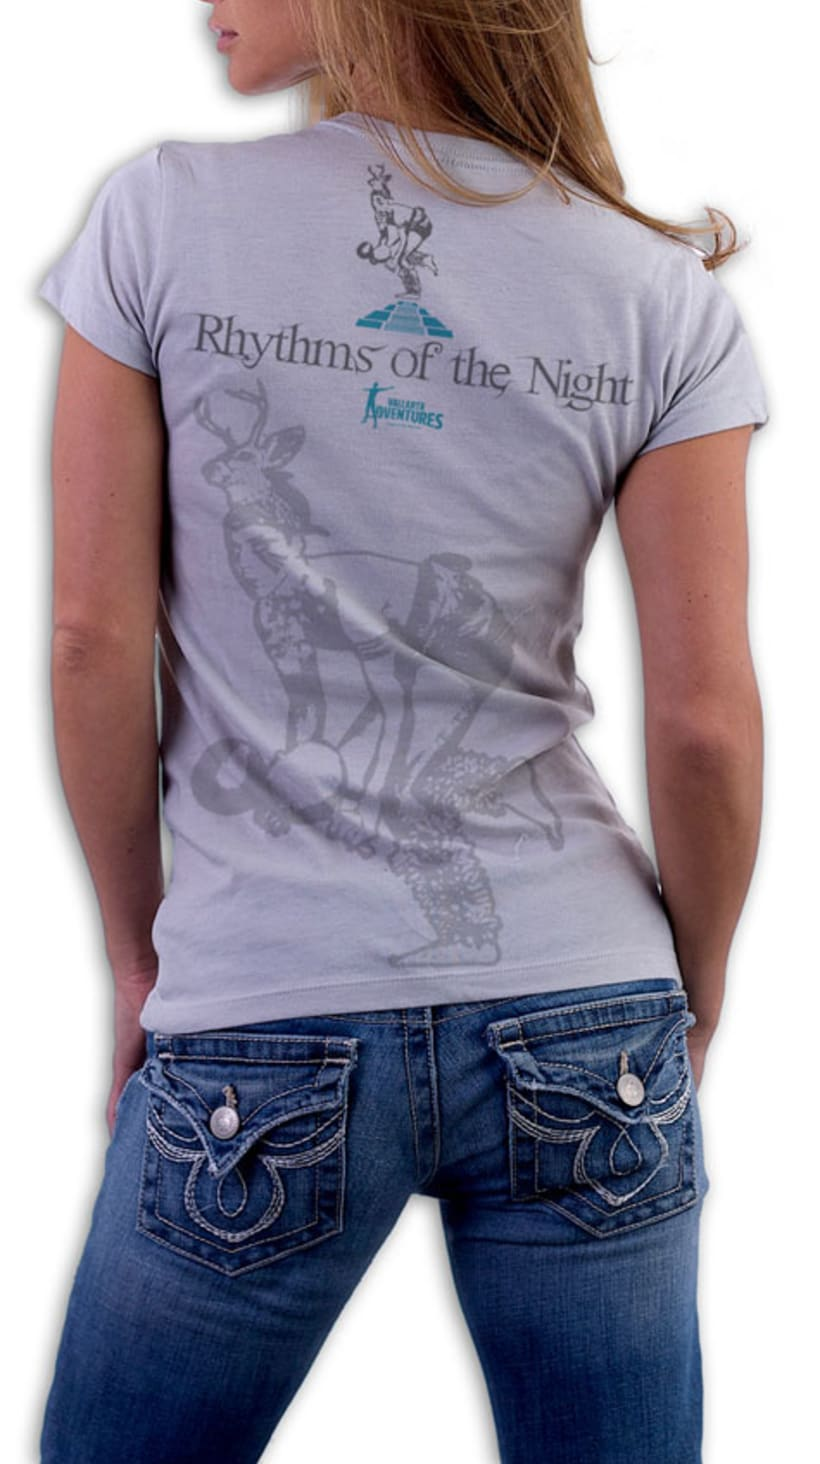 Rhythms of the Night 4